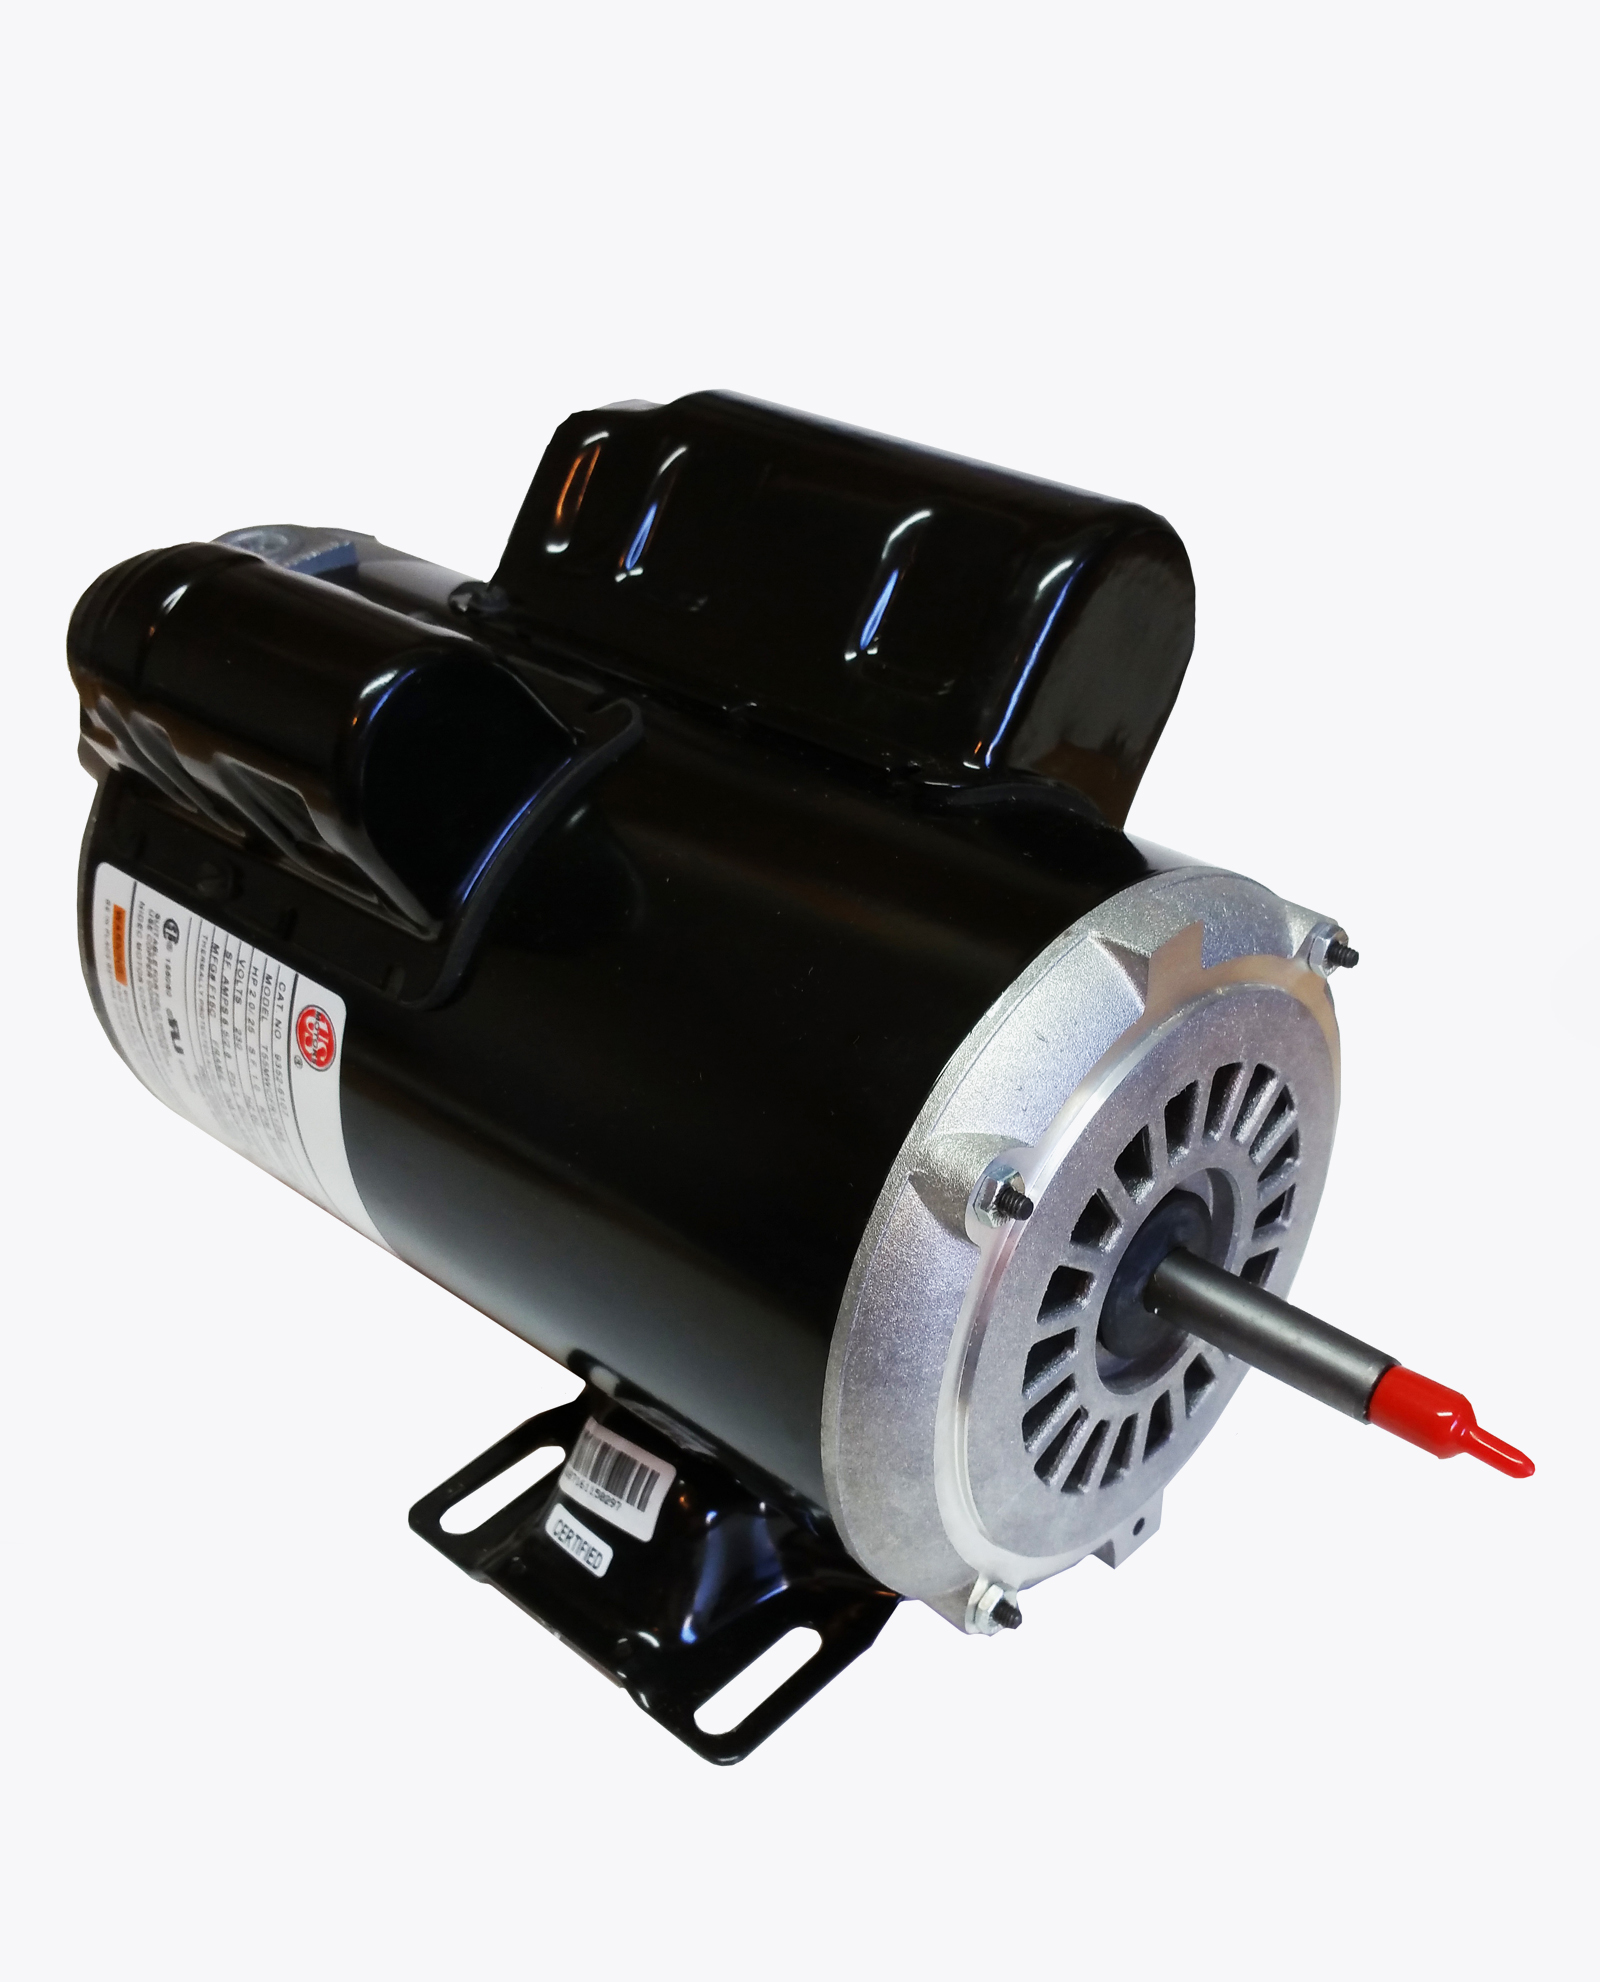 2 Hp Motor 230volt 2 Speed Hot Tub Spa Motor Hydro